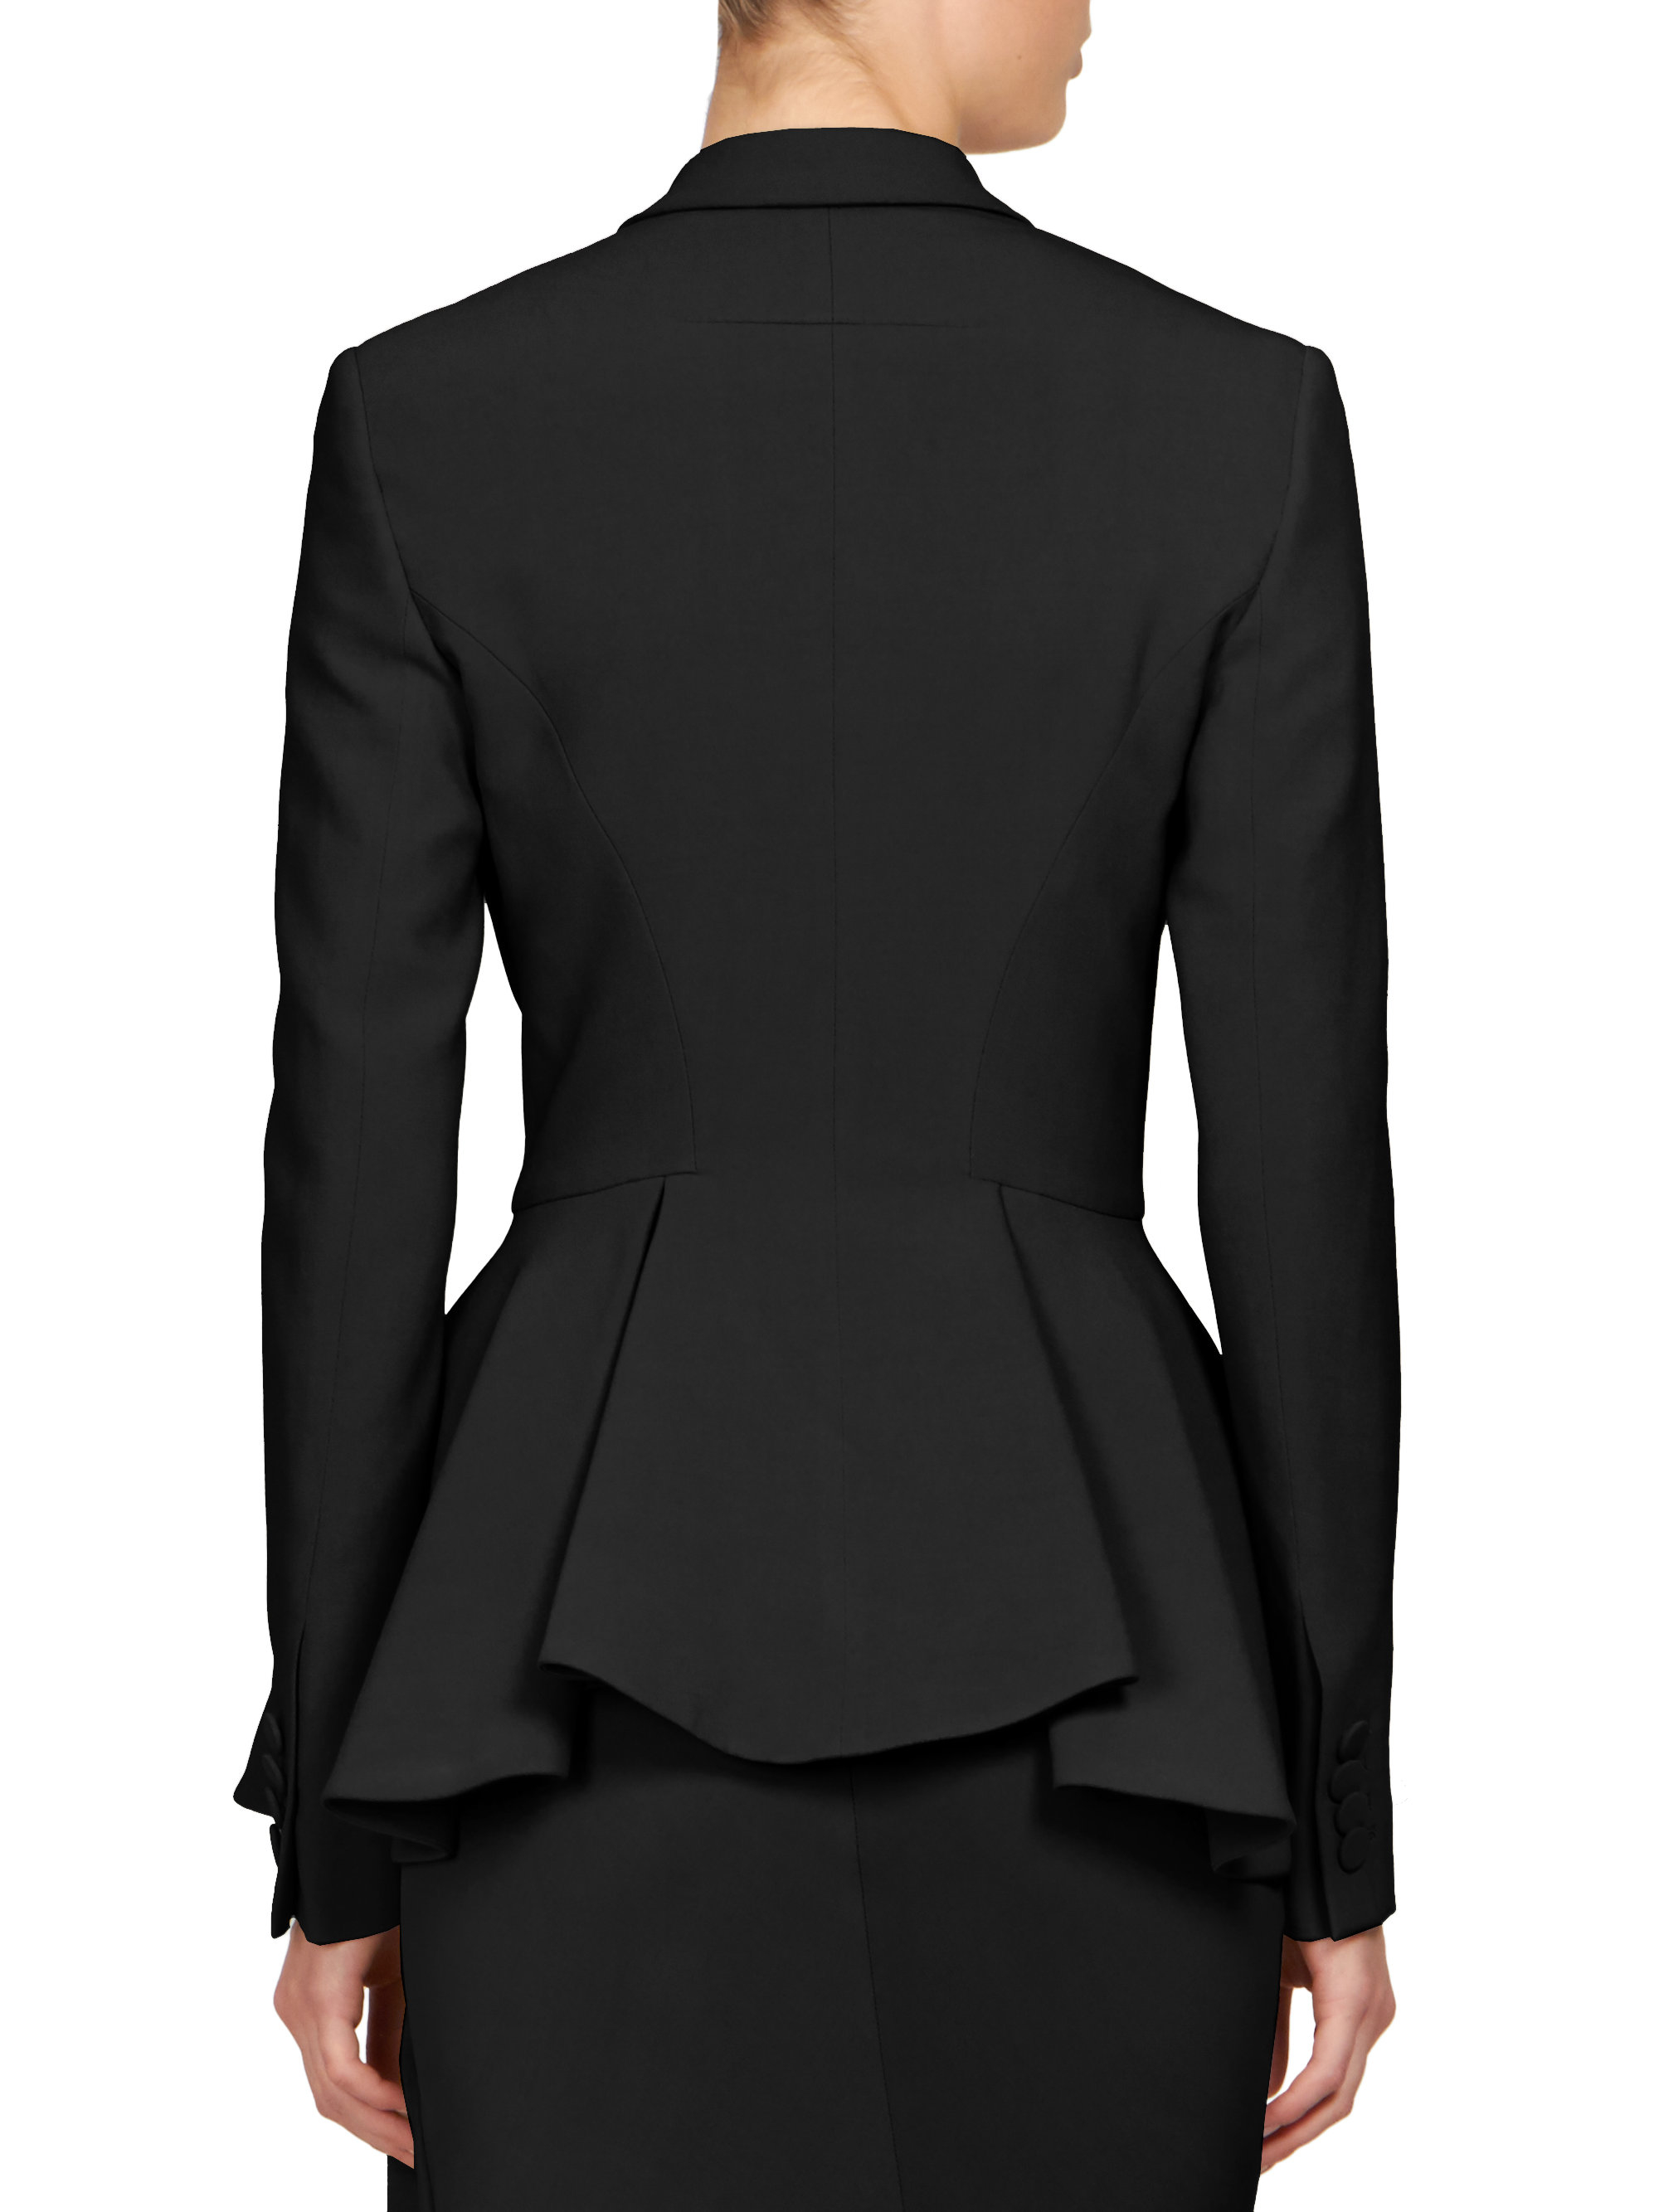 Find black peplum jacket at ShopStyle. Shop the latest collection of black peplum jacket from the most popular stores - all in one place.